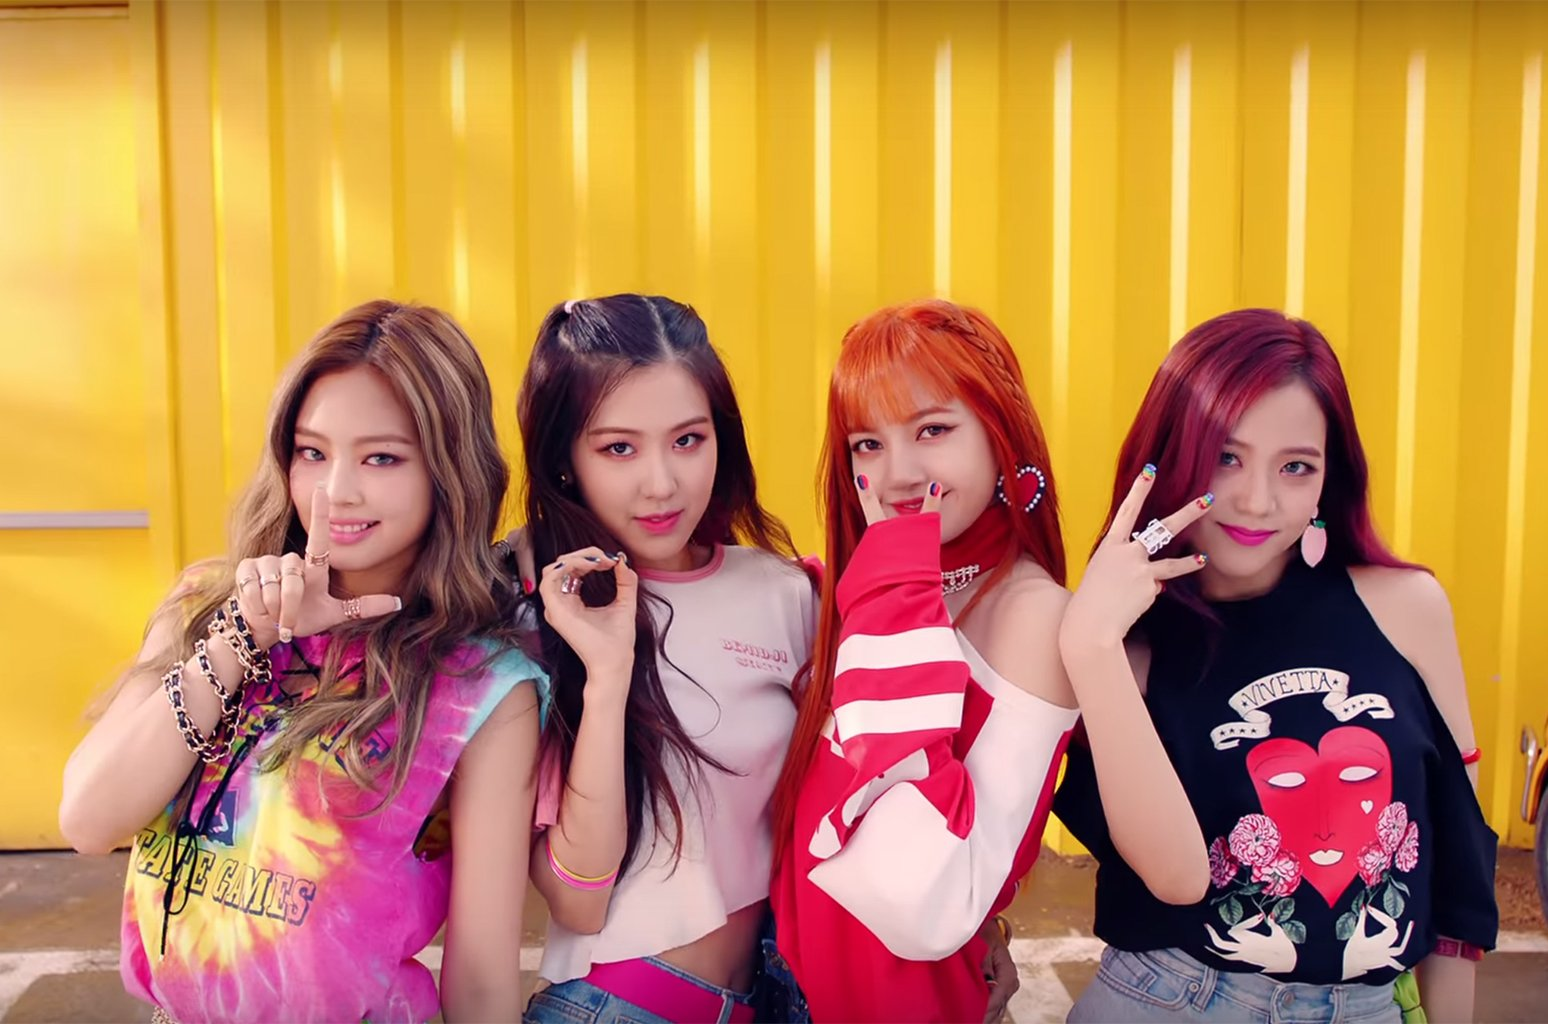 CEO confirms that new music is coming from K-pop girl group BlackPink https://t.co/7mS3gfnZ2D https://t.co/To0fT61lXz